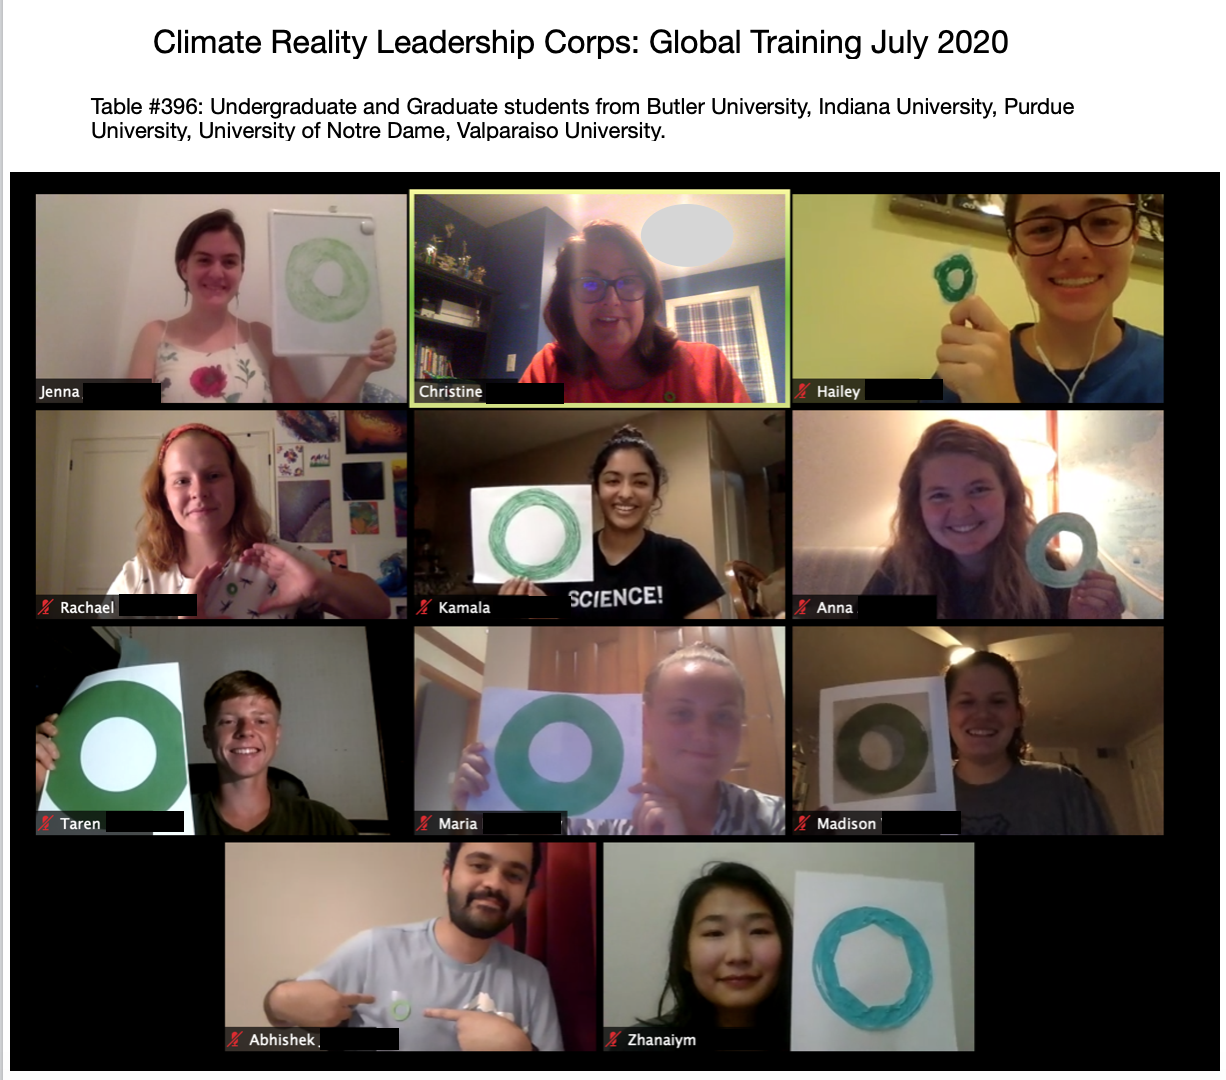 Image of virtual training participants with homemade green rings to symbolize their certification.